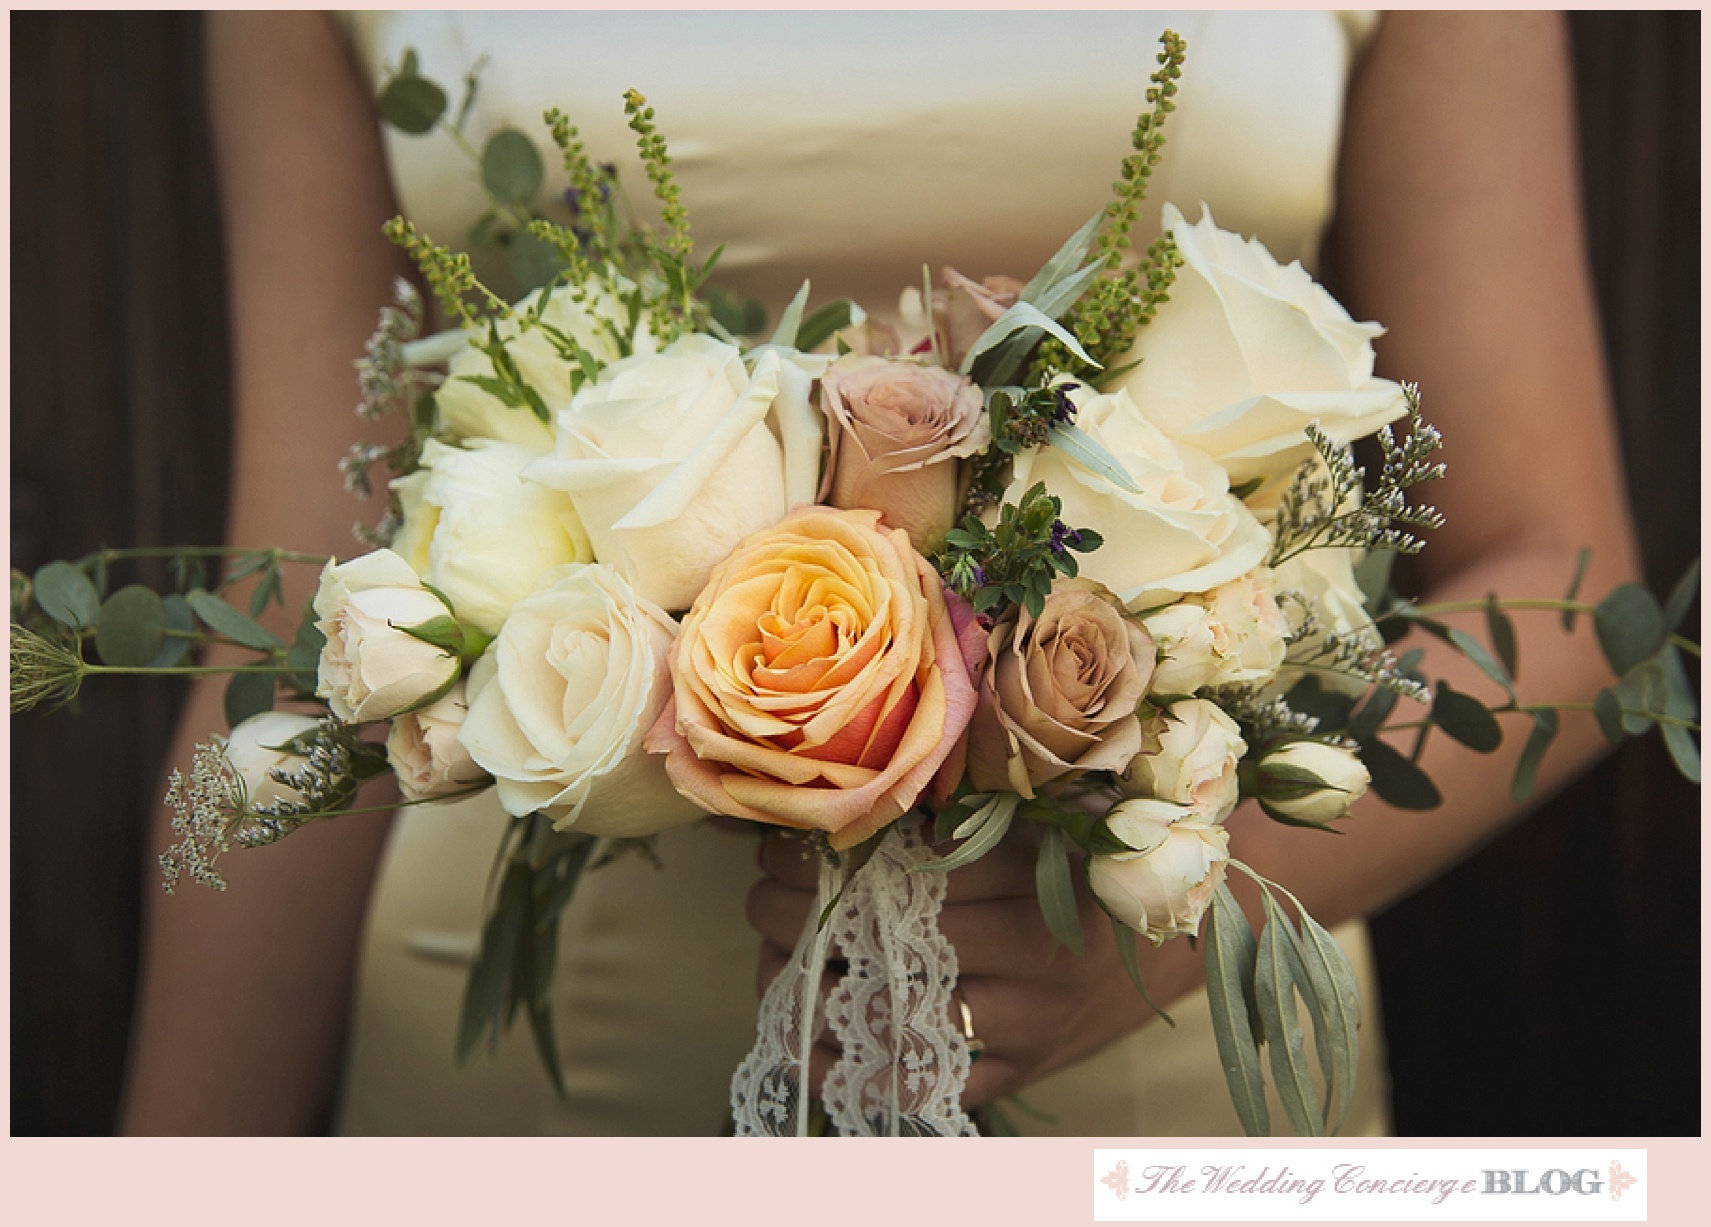 Rustic_Styled_Bridal_Shoot_The_Wedding_Concierge_0045.jpg